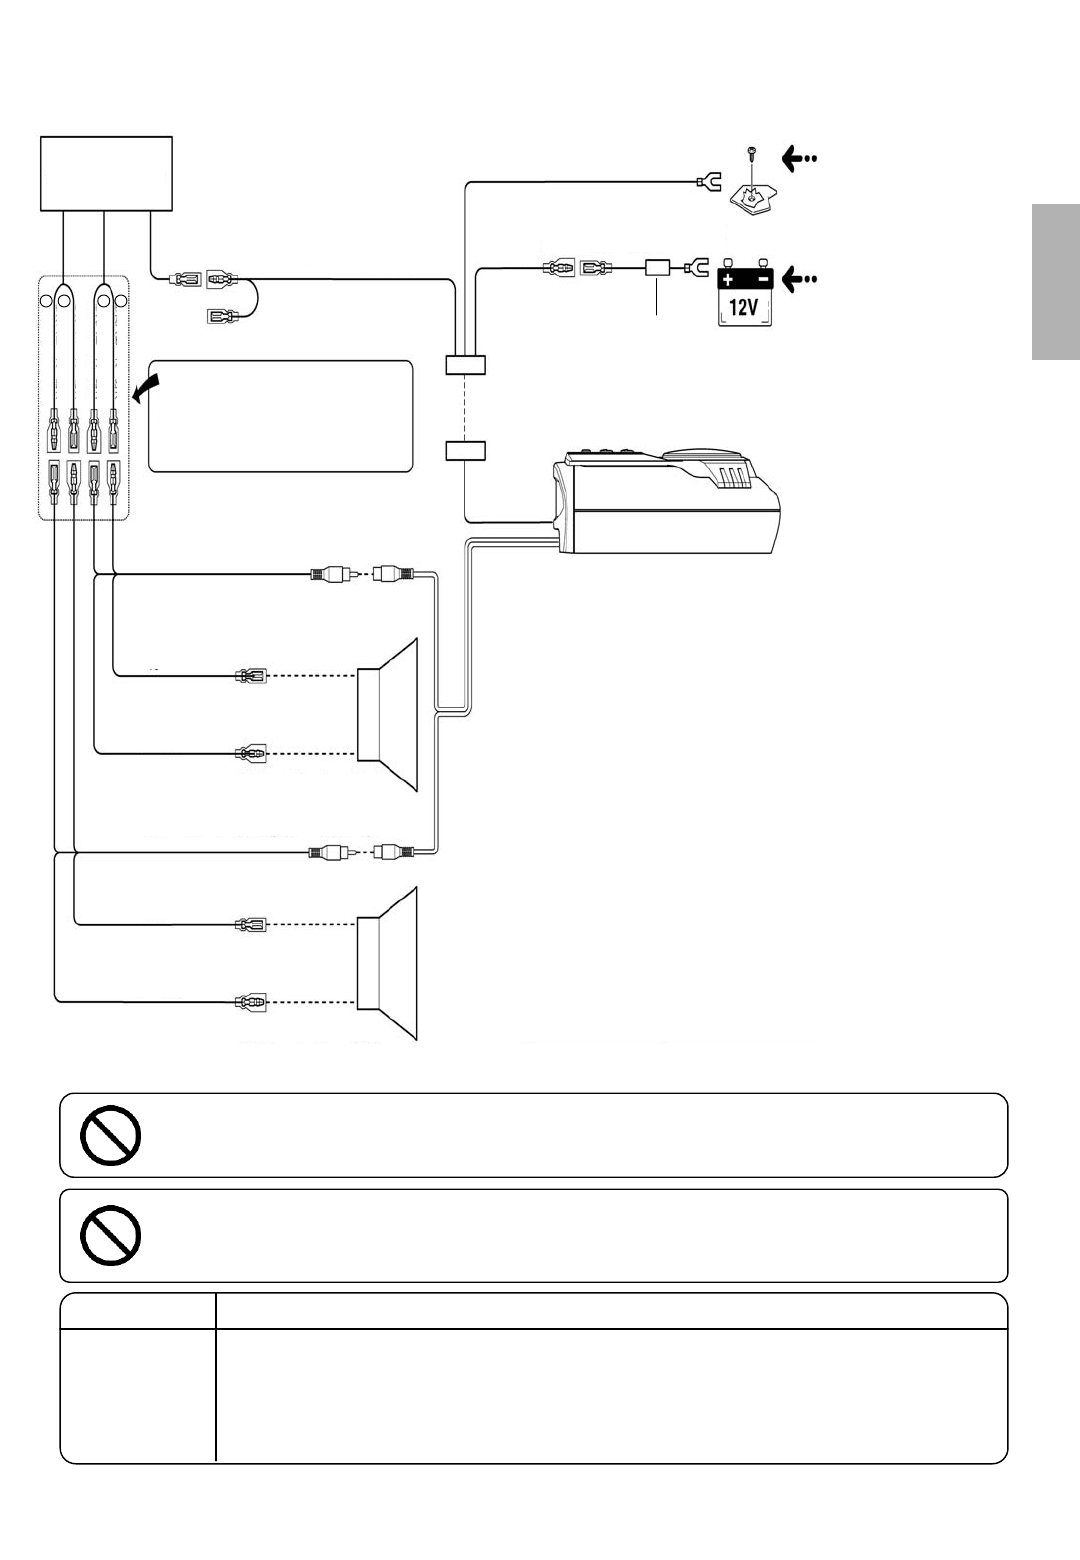 da765152 9ce9 4091 bf6b aea4f249a992 bgb page 11 of alpine car speaker swd 1600 user guide manualsonline com alpine swd-1600 wiring diagram at virtualis.co